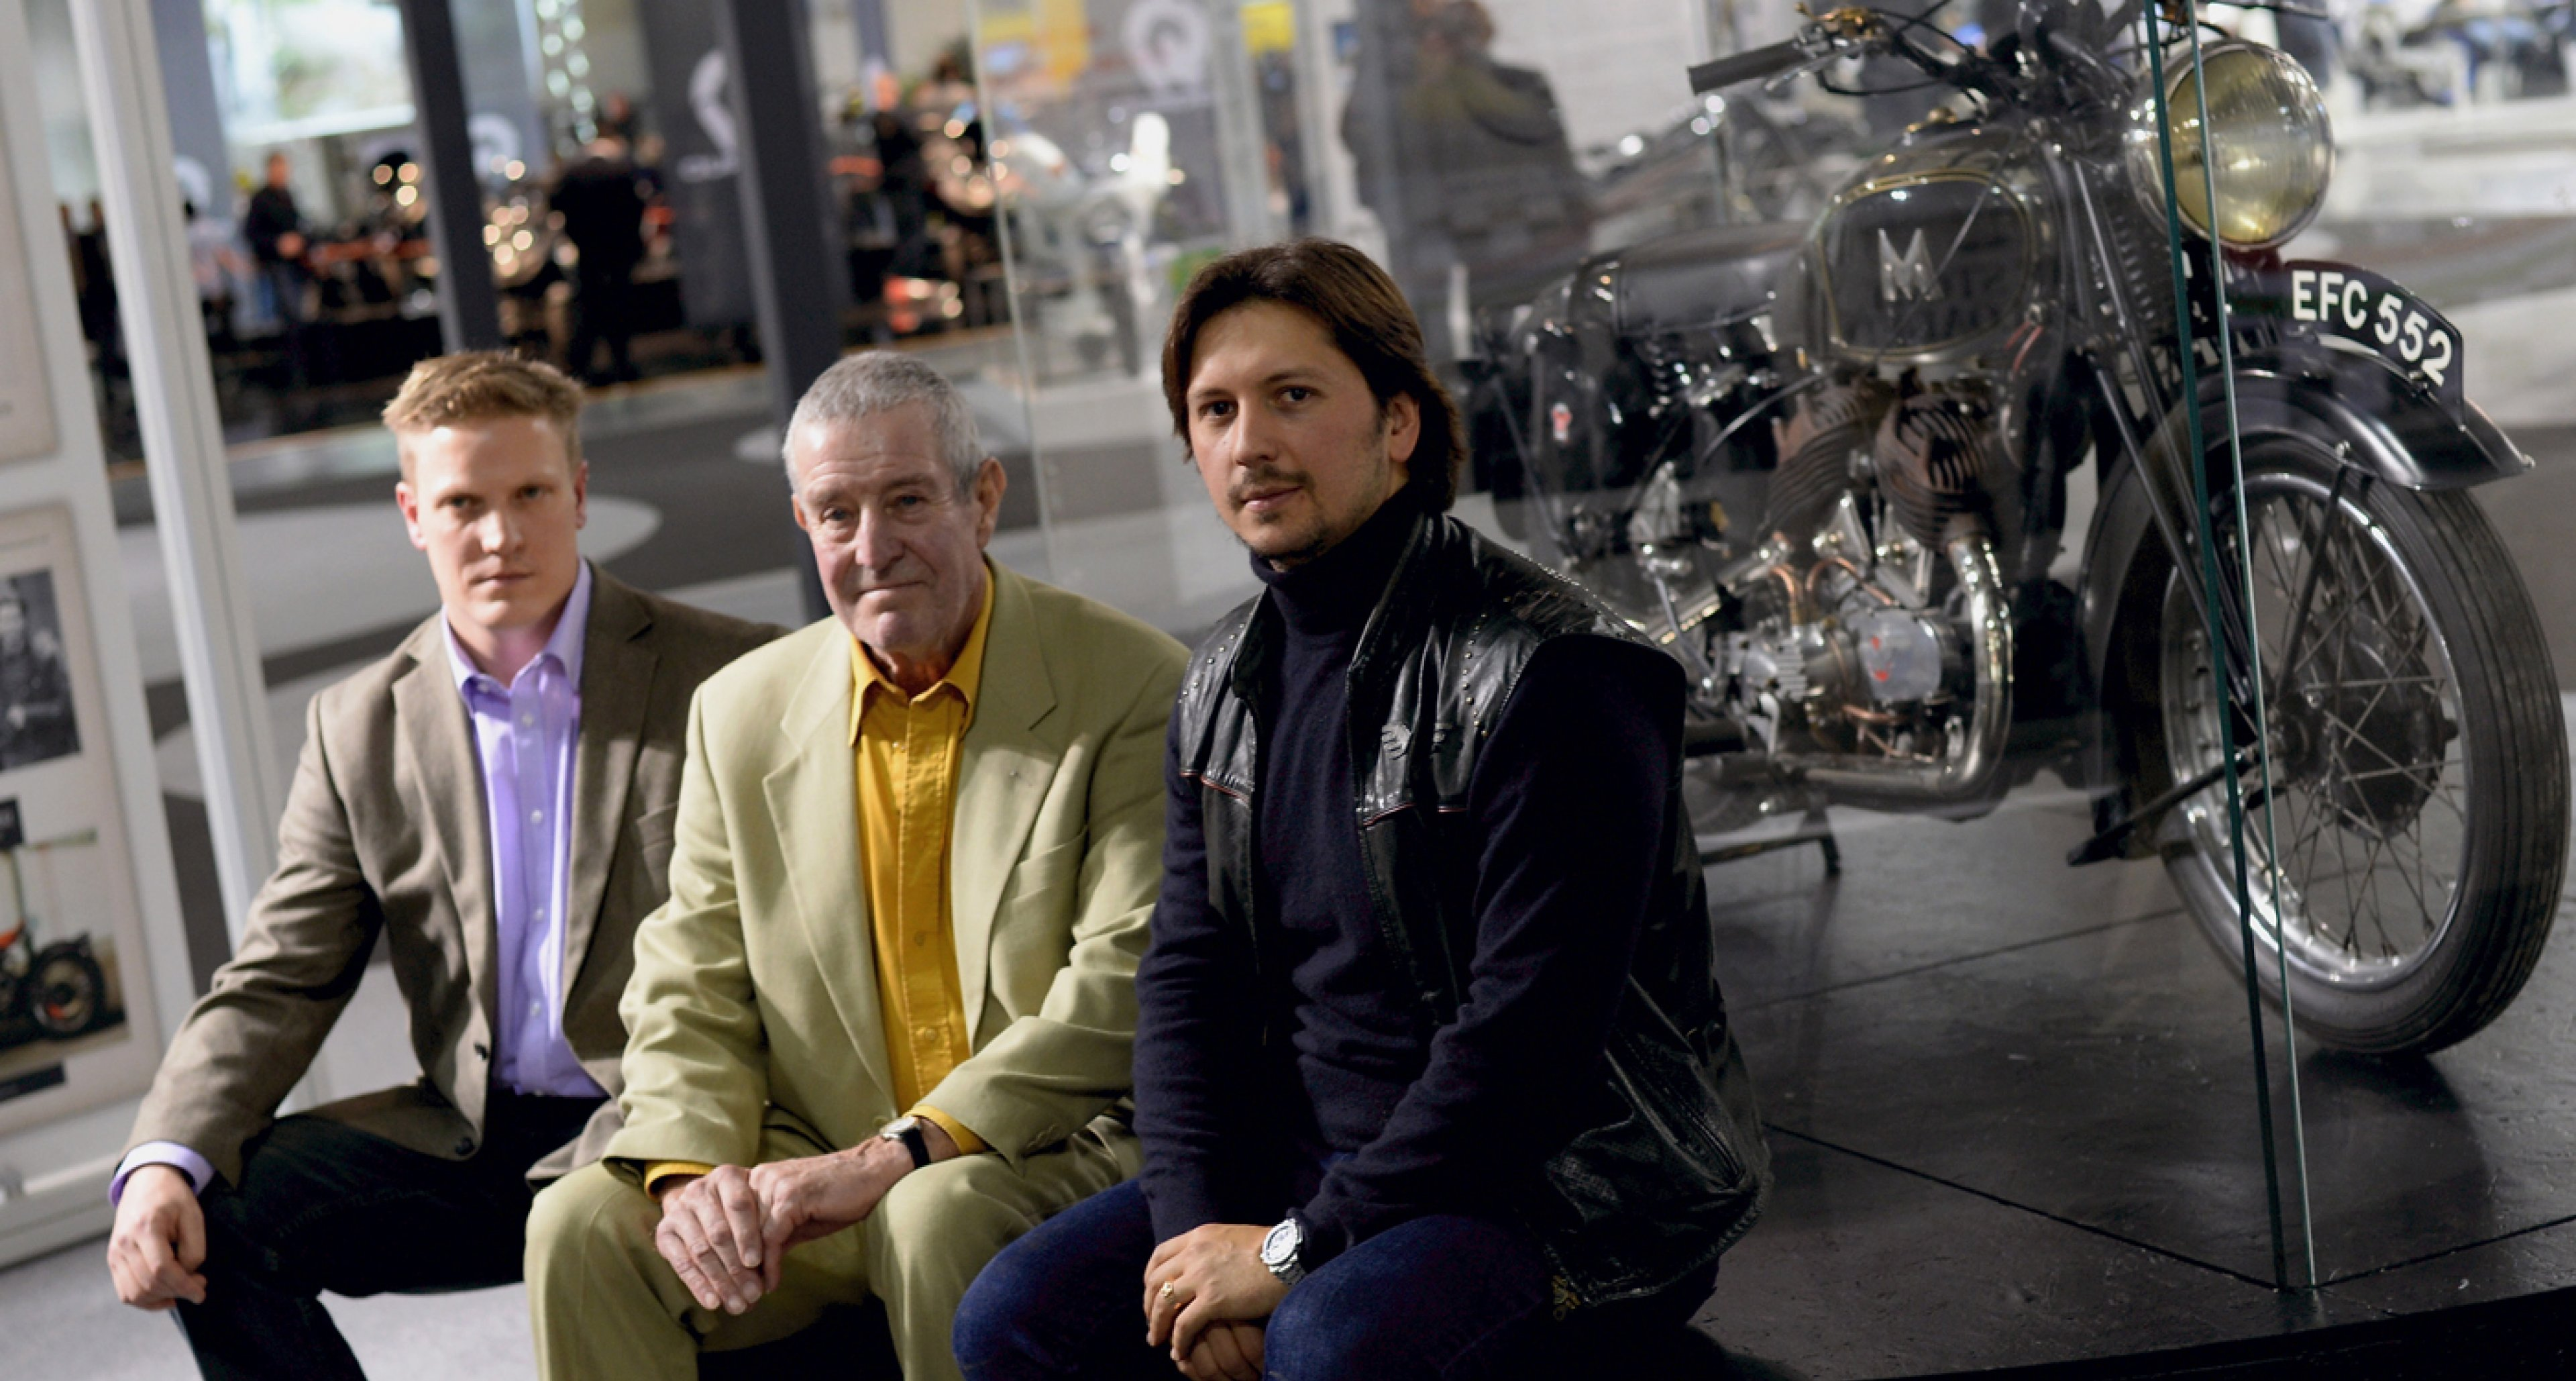 Nicholas John Kelleher, John Henry Kelleher and Matchless Chairman Franco Malenotti attend the Matchless Official Presentation of the model X Reloaded during the EICMA 2014 International Motorcycle Exhibition in Milan, Italy.